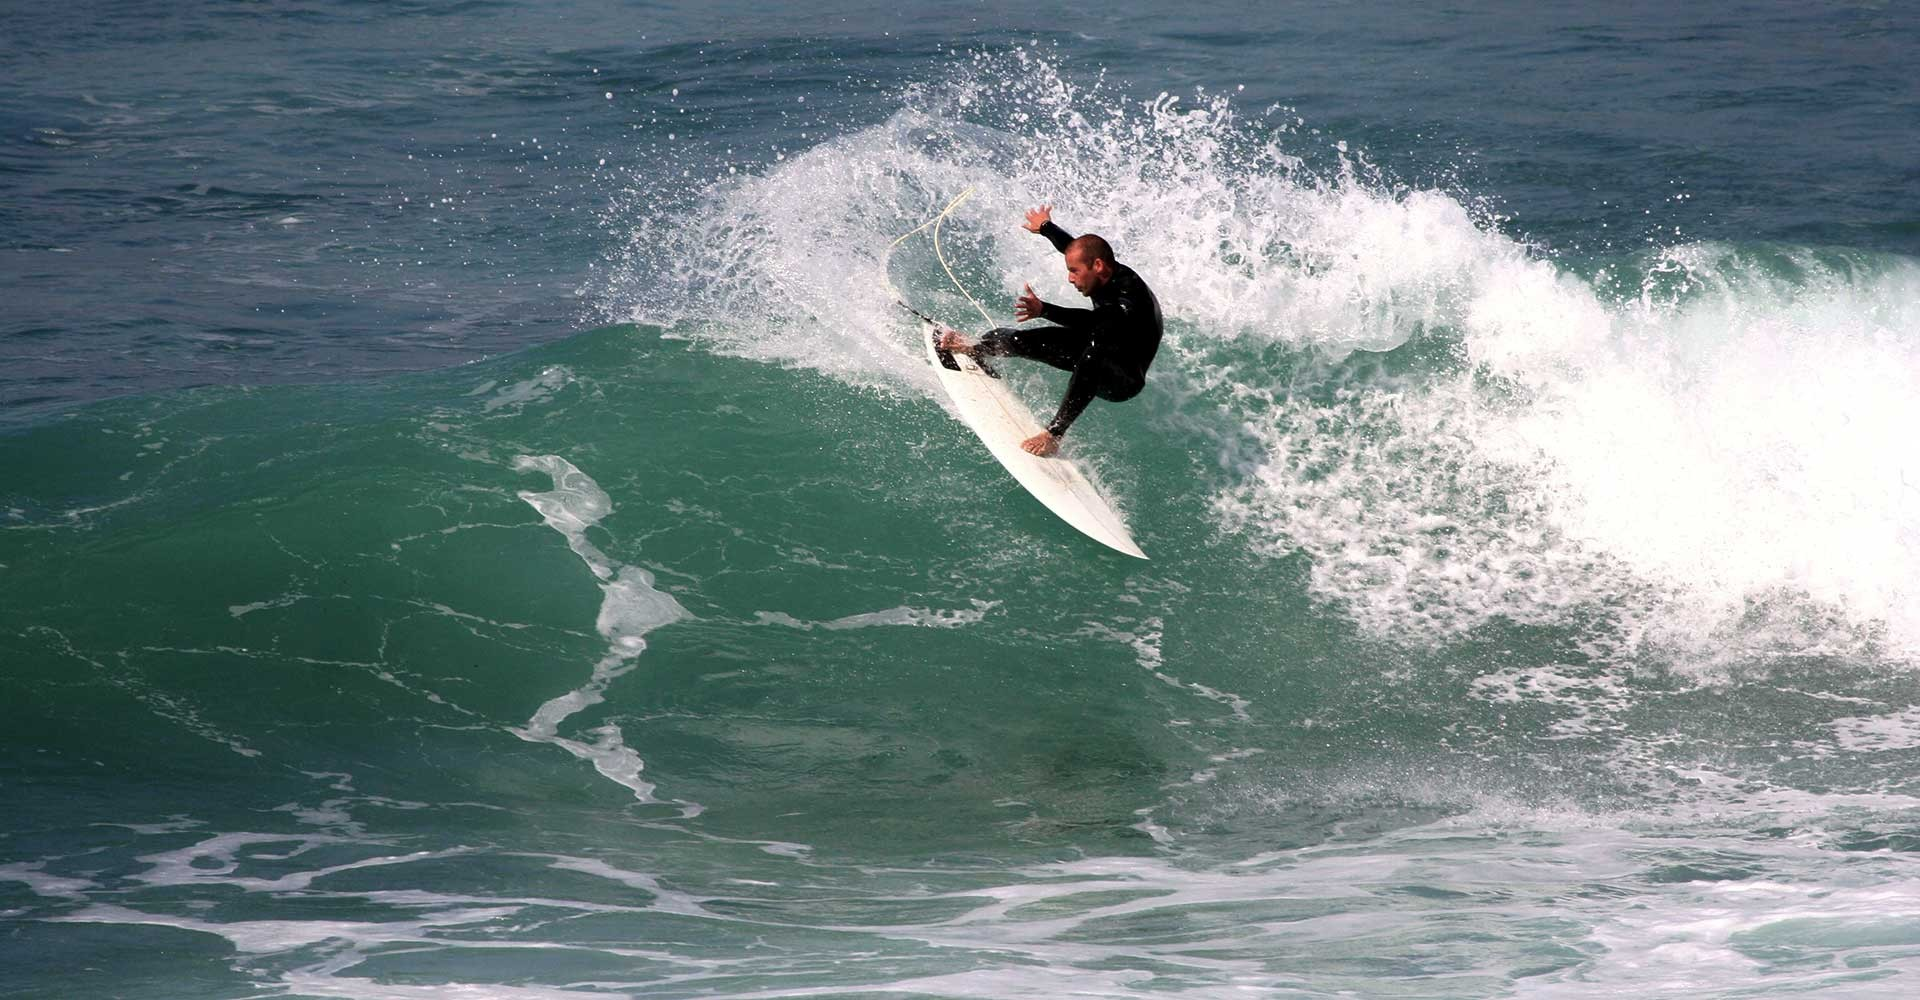 ricardo-pires, tiago-pires, micasurfboards, ericeira, surfing, surfboard, shaping, but-surfboard